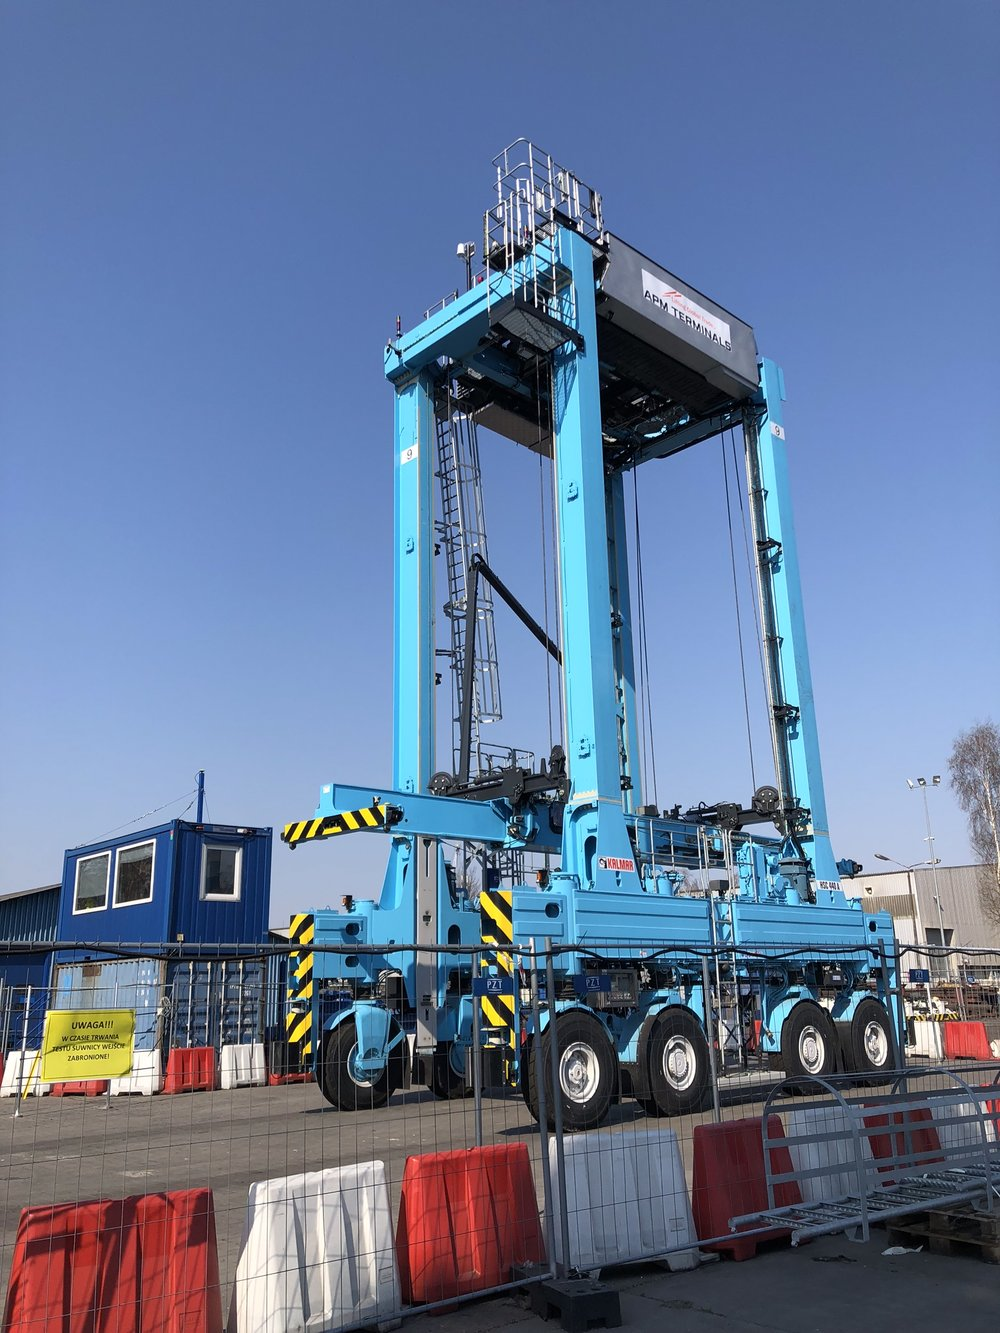 An automated straddle carrier that APM plans to test (Photo: APM)